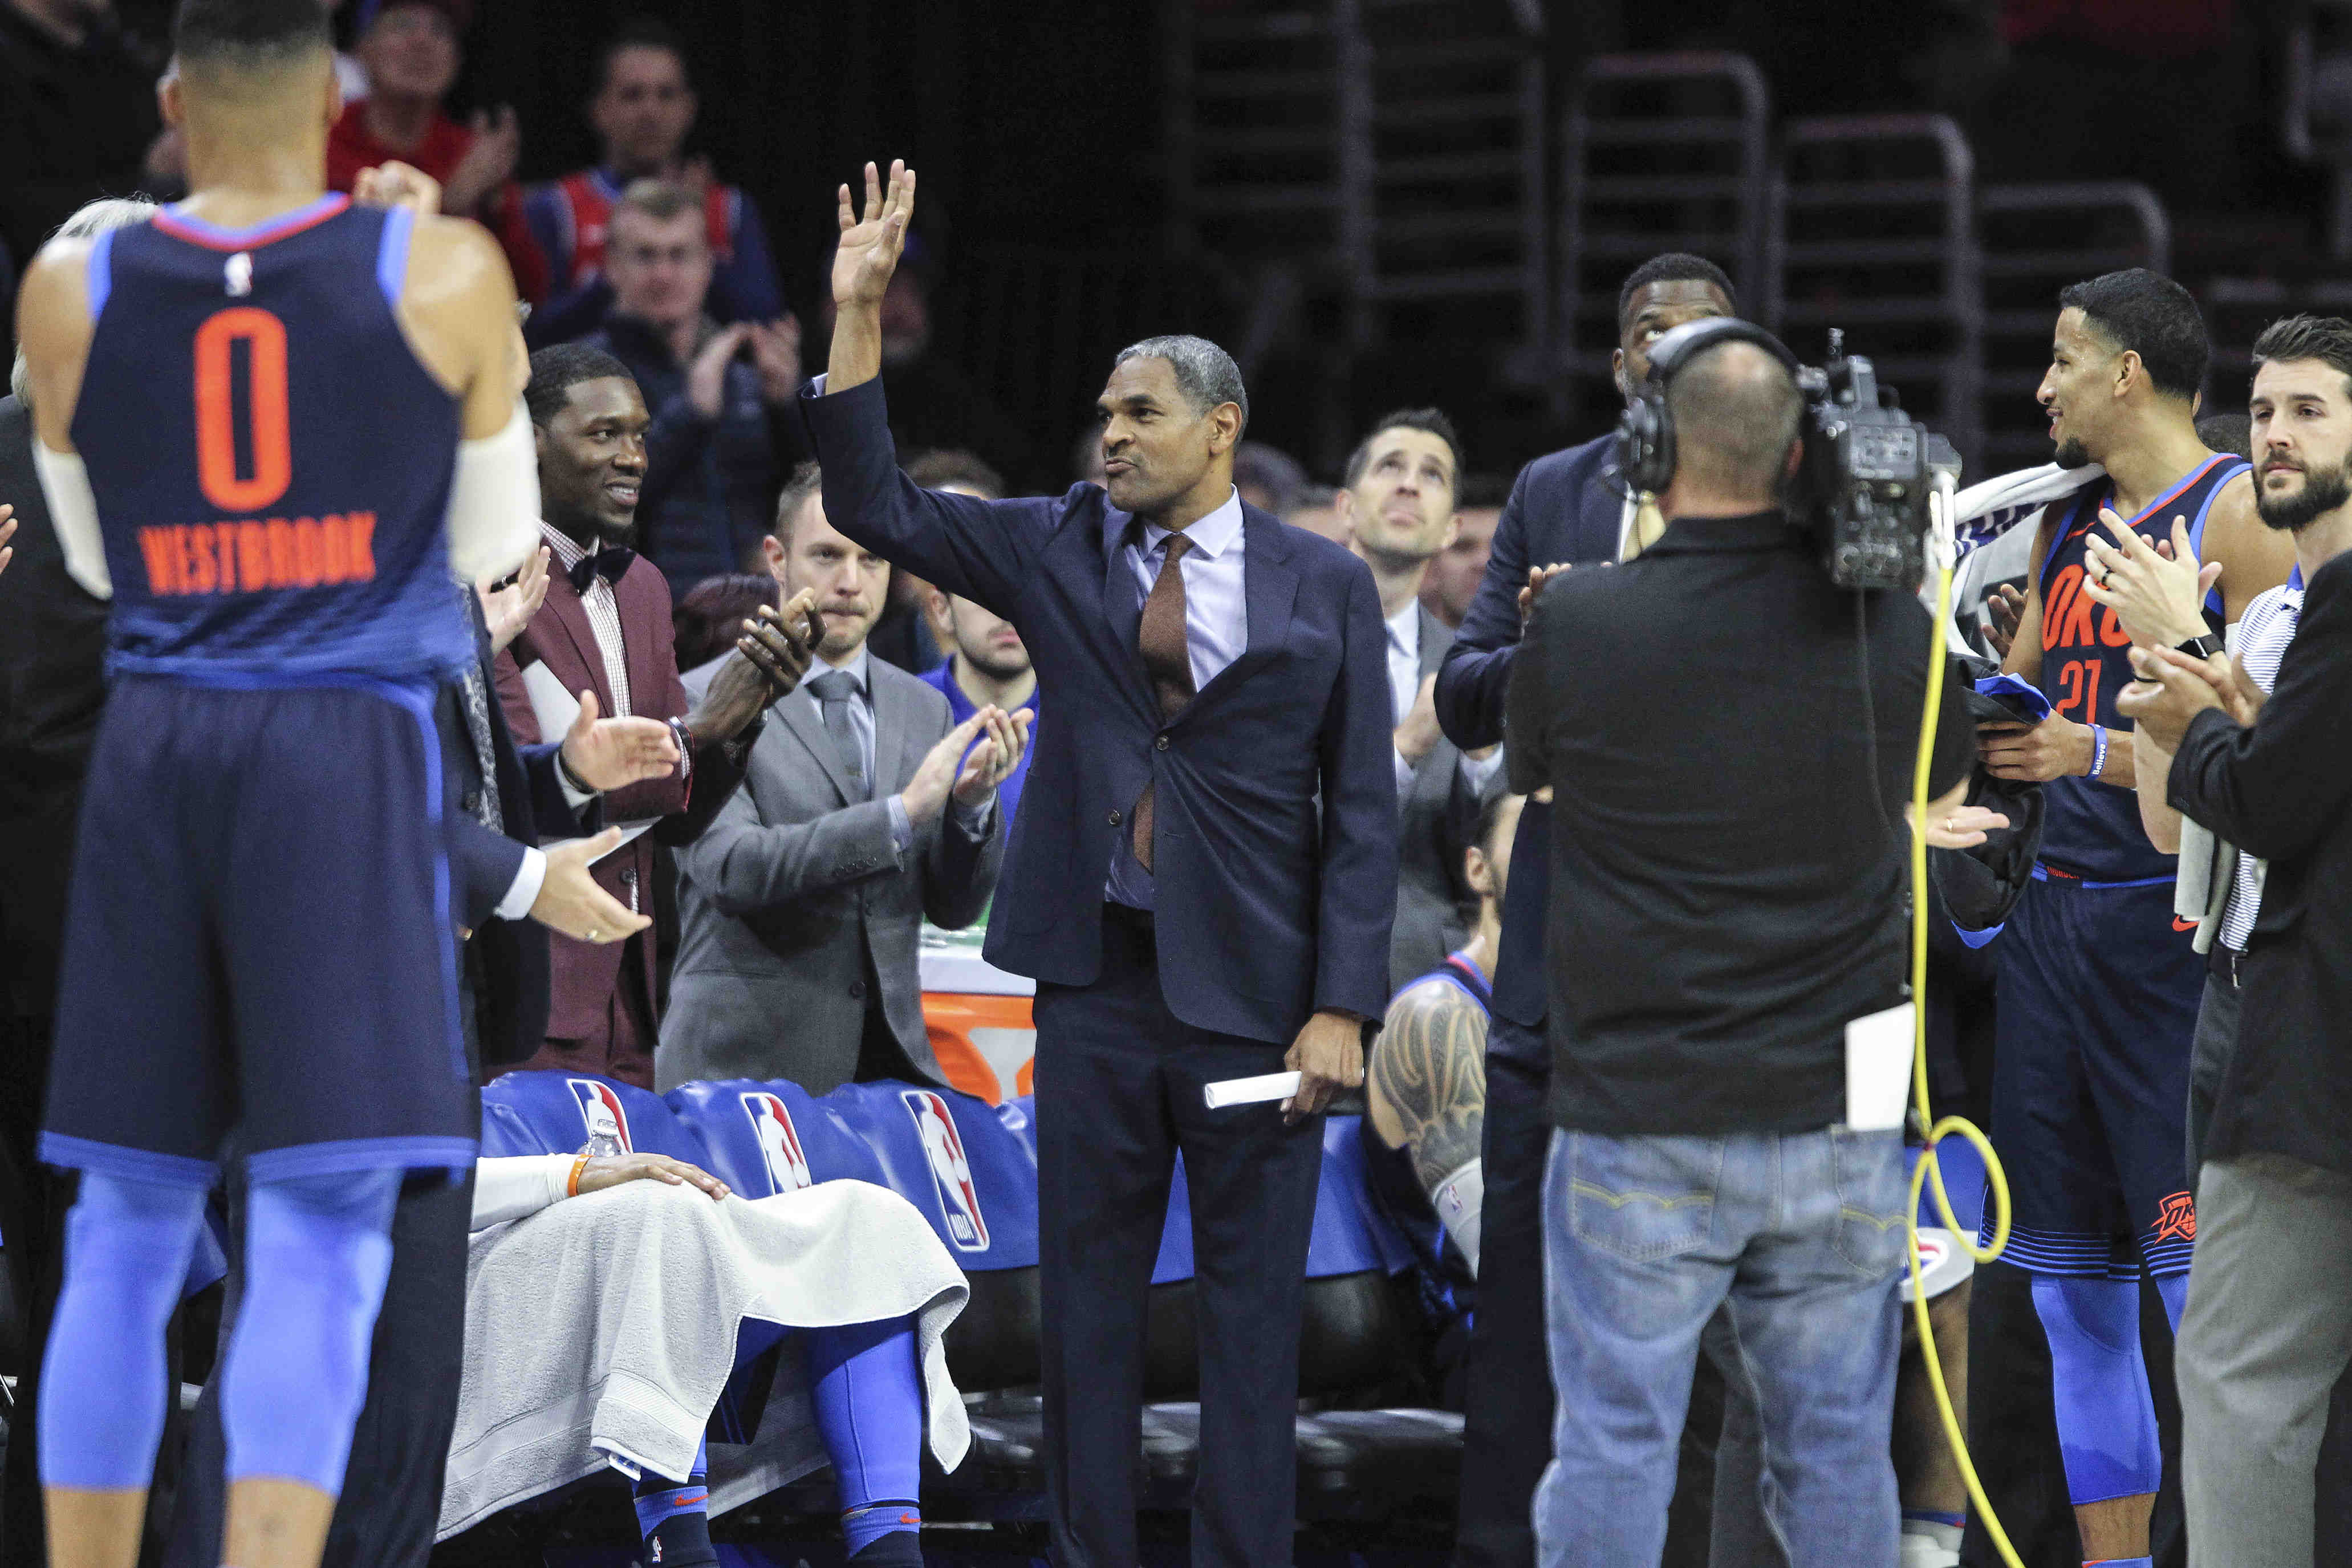 Sixers´ recognized  Thunder´s Assistant Coach Maurice Cheeks former Sixers star player before their game at the Wells Fargo Center in Philadelphia, Friday, December 15, 2017. The Thunder beats the Sixers in Triple overtime 119-117.  STEVEN M. FALK / Staff Photographer